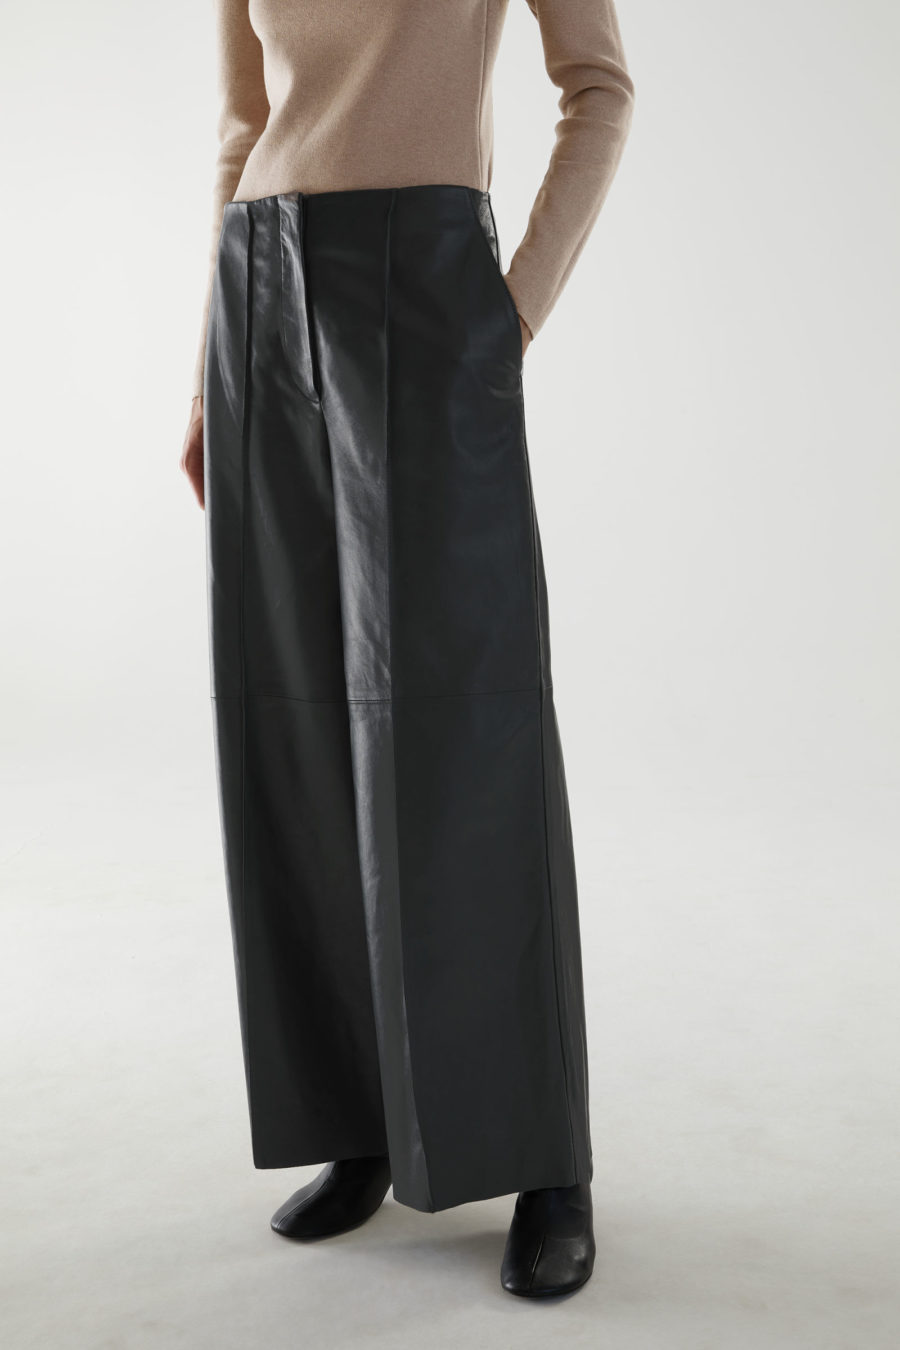 COS Long Leather Pants ($390)